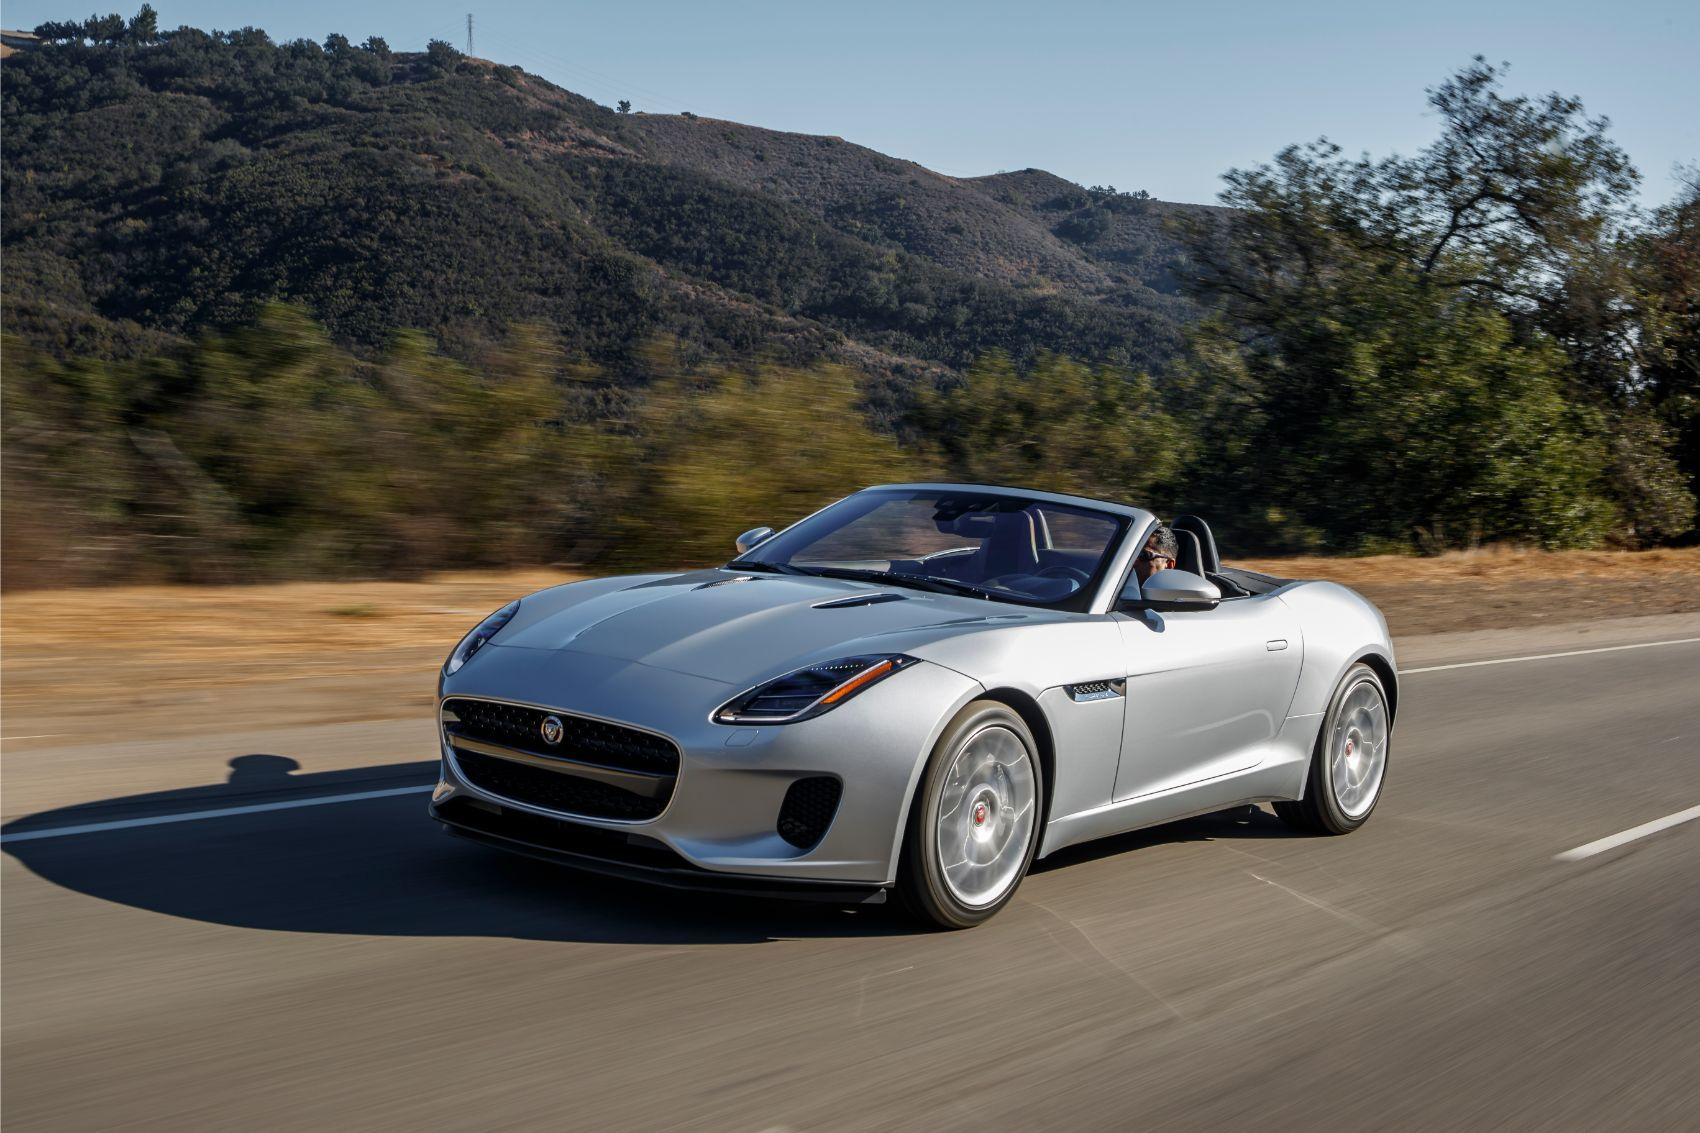 Best Convertibles For 2019 Here Are 10 Fast Fun Options